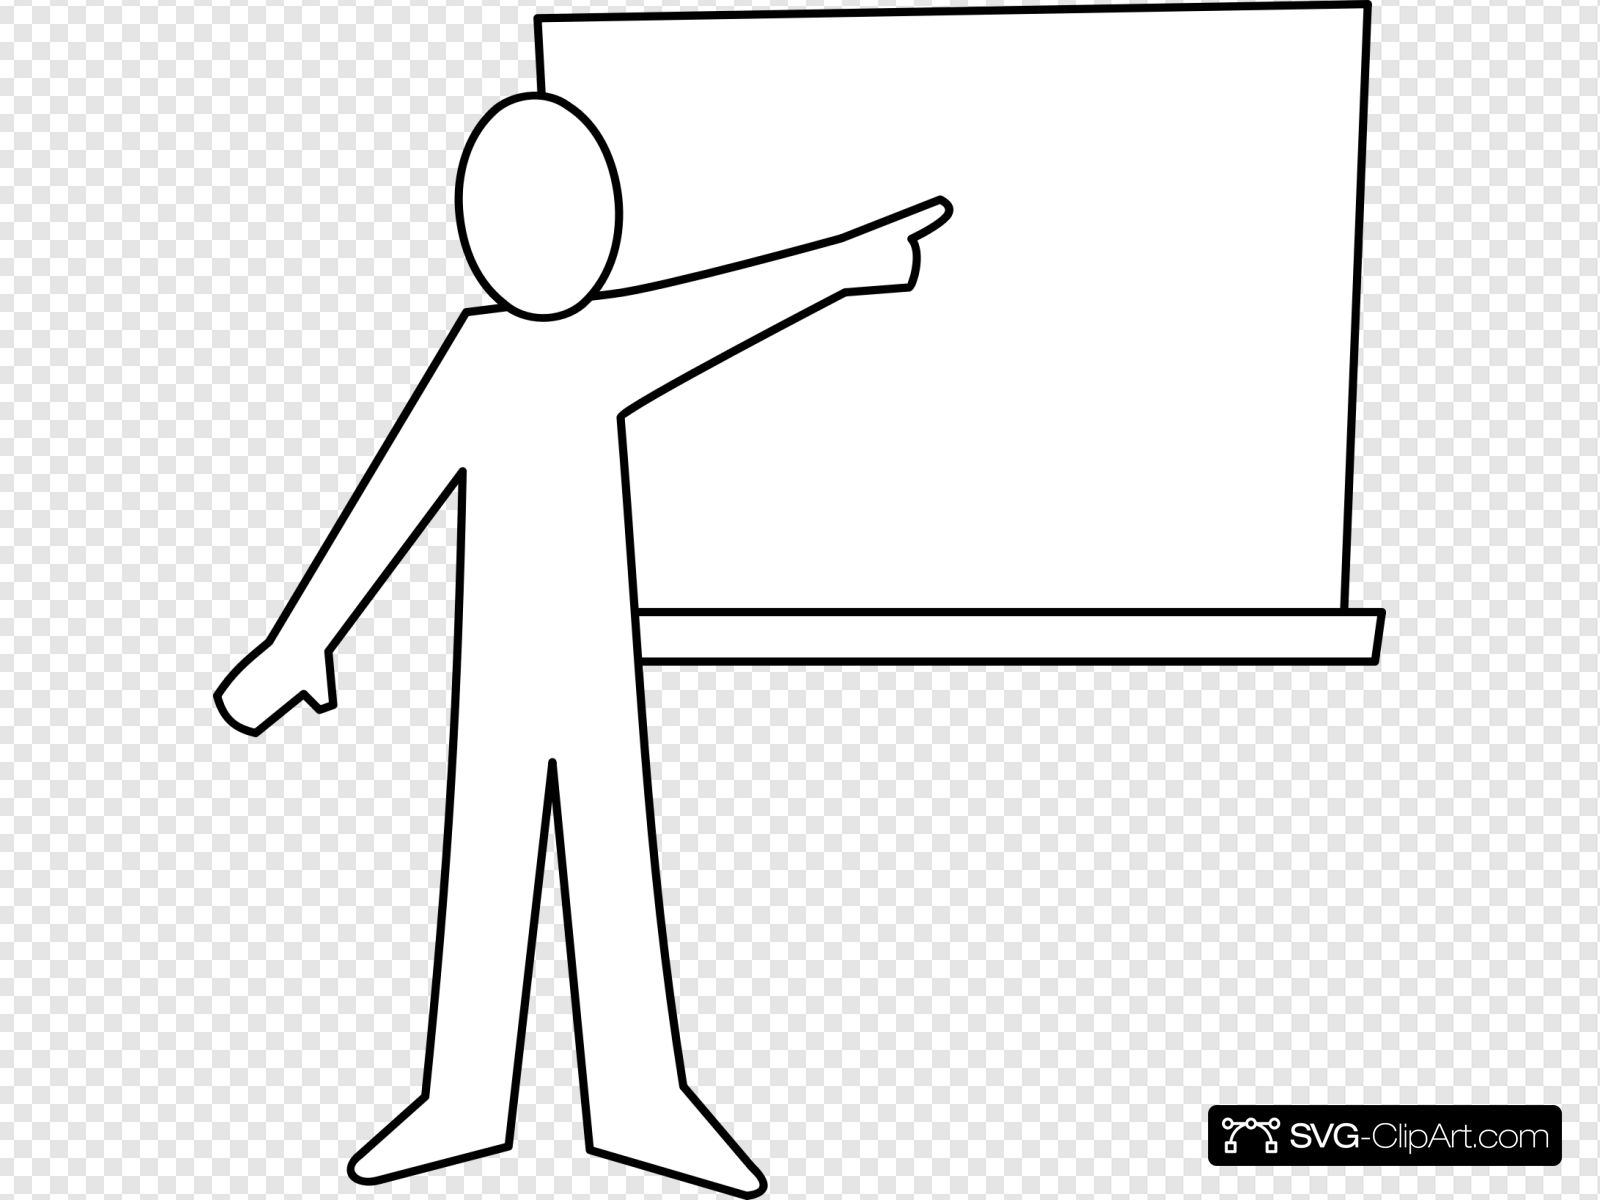 Teacher pointing at board clipart image transparent Teacher Pointing At Board Outline Clip art, Icon and SVG ... image transparent